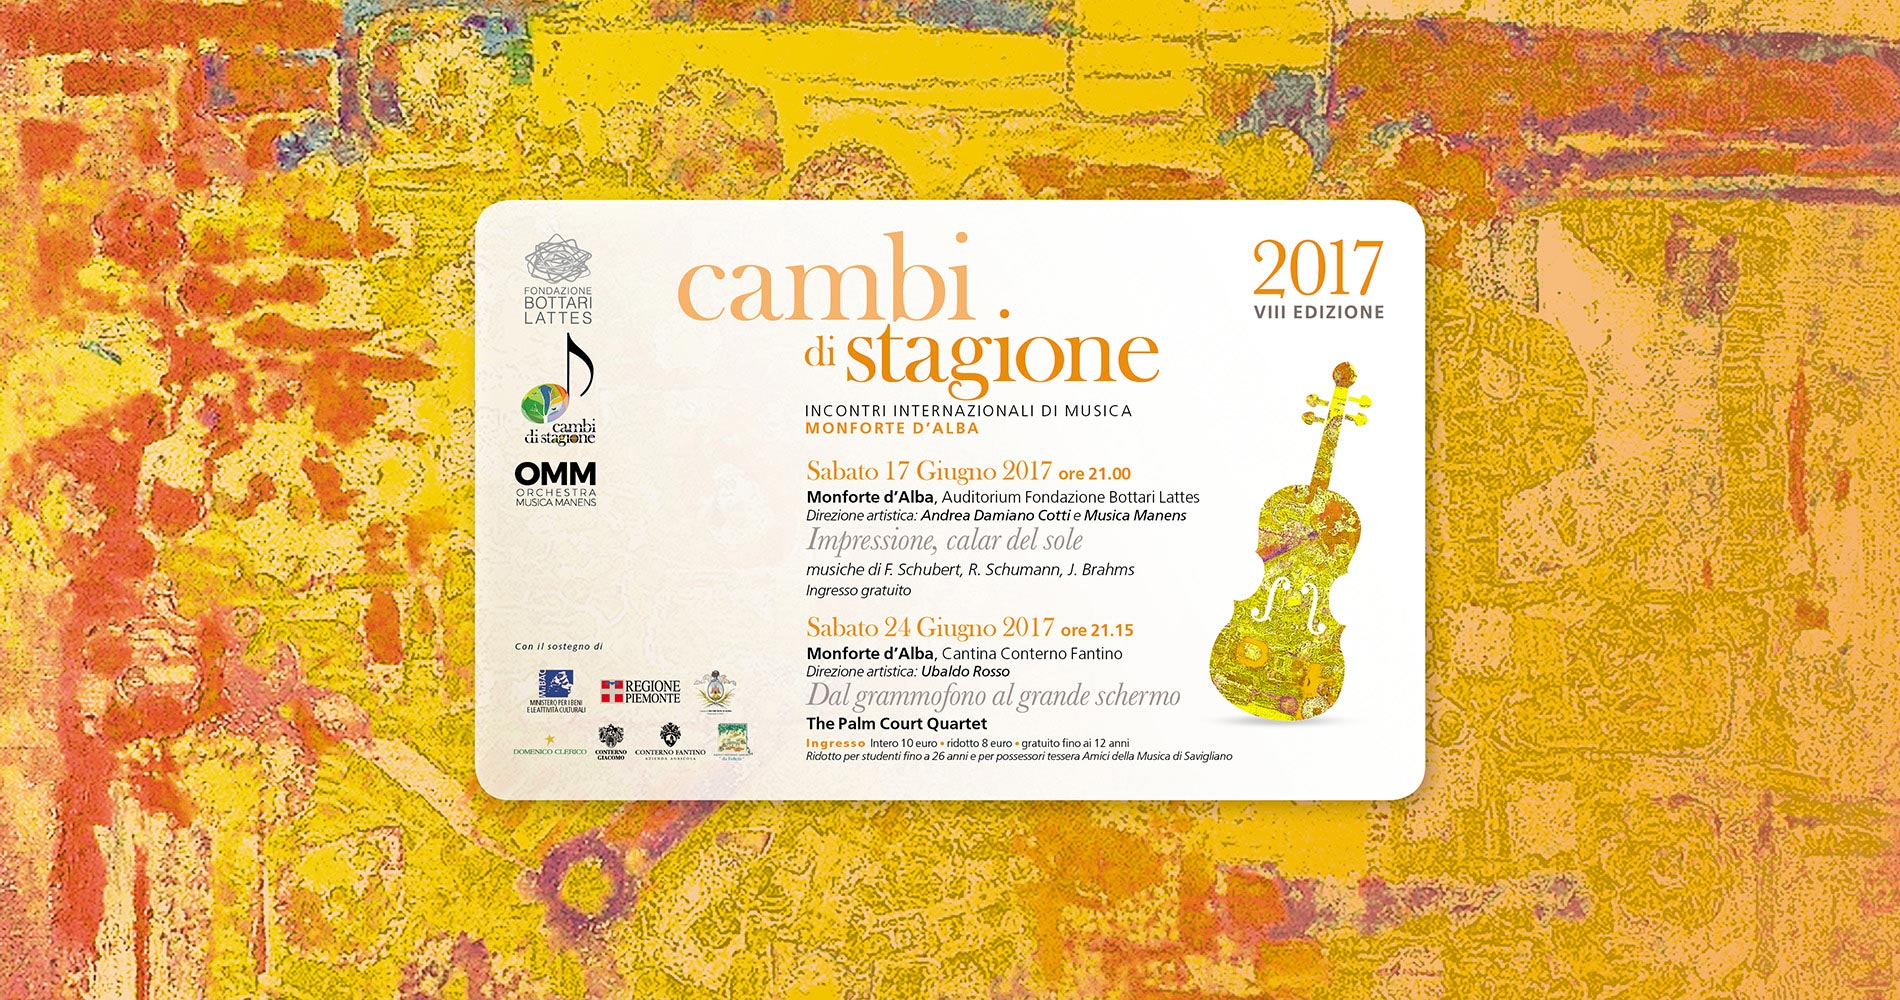 L'estate con la musica di Cambi di Stagione: Orchestra Musica Manens e The Palm Court Quartet